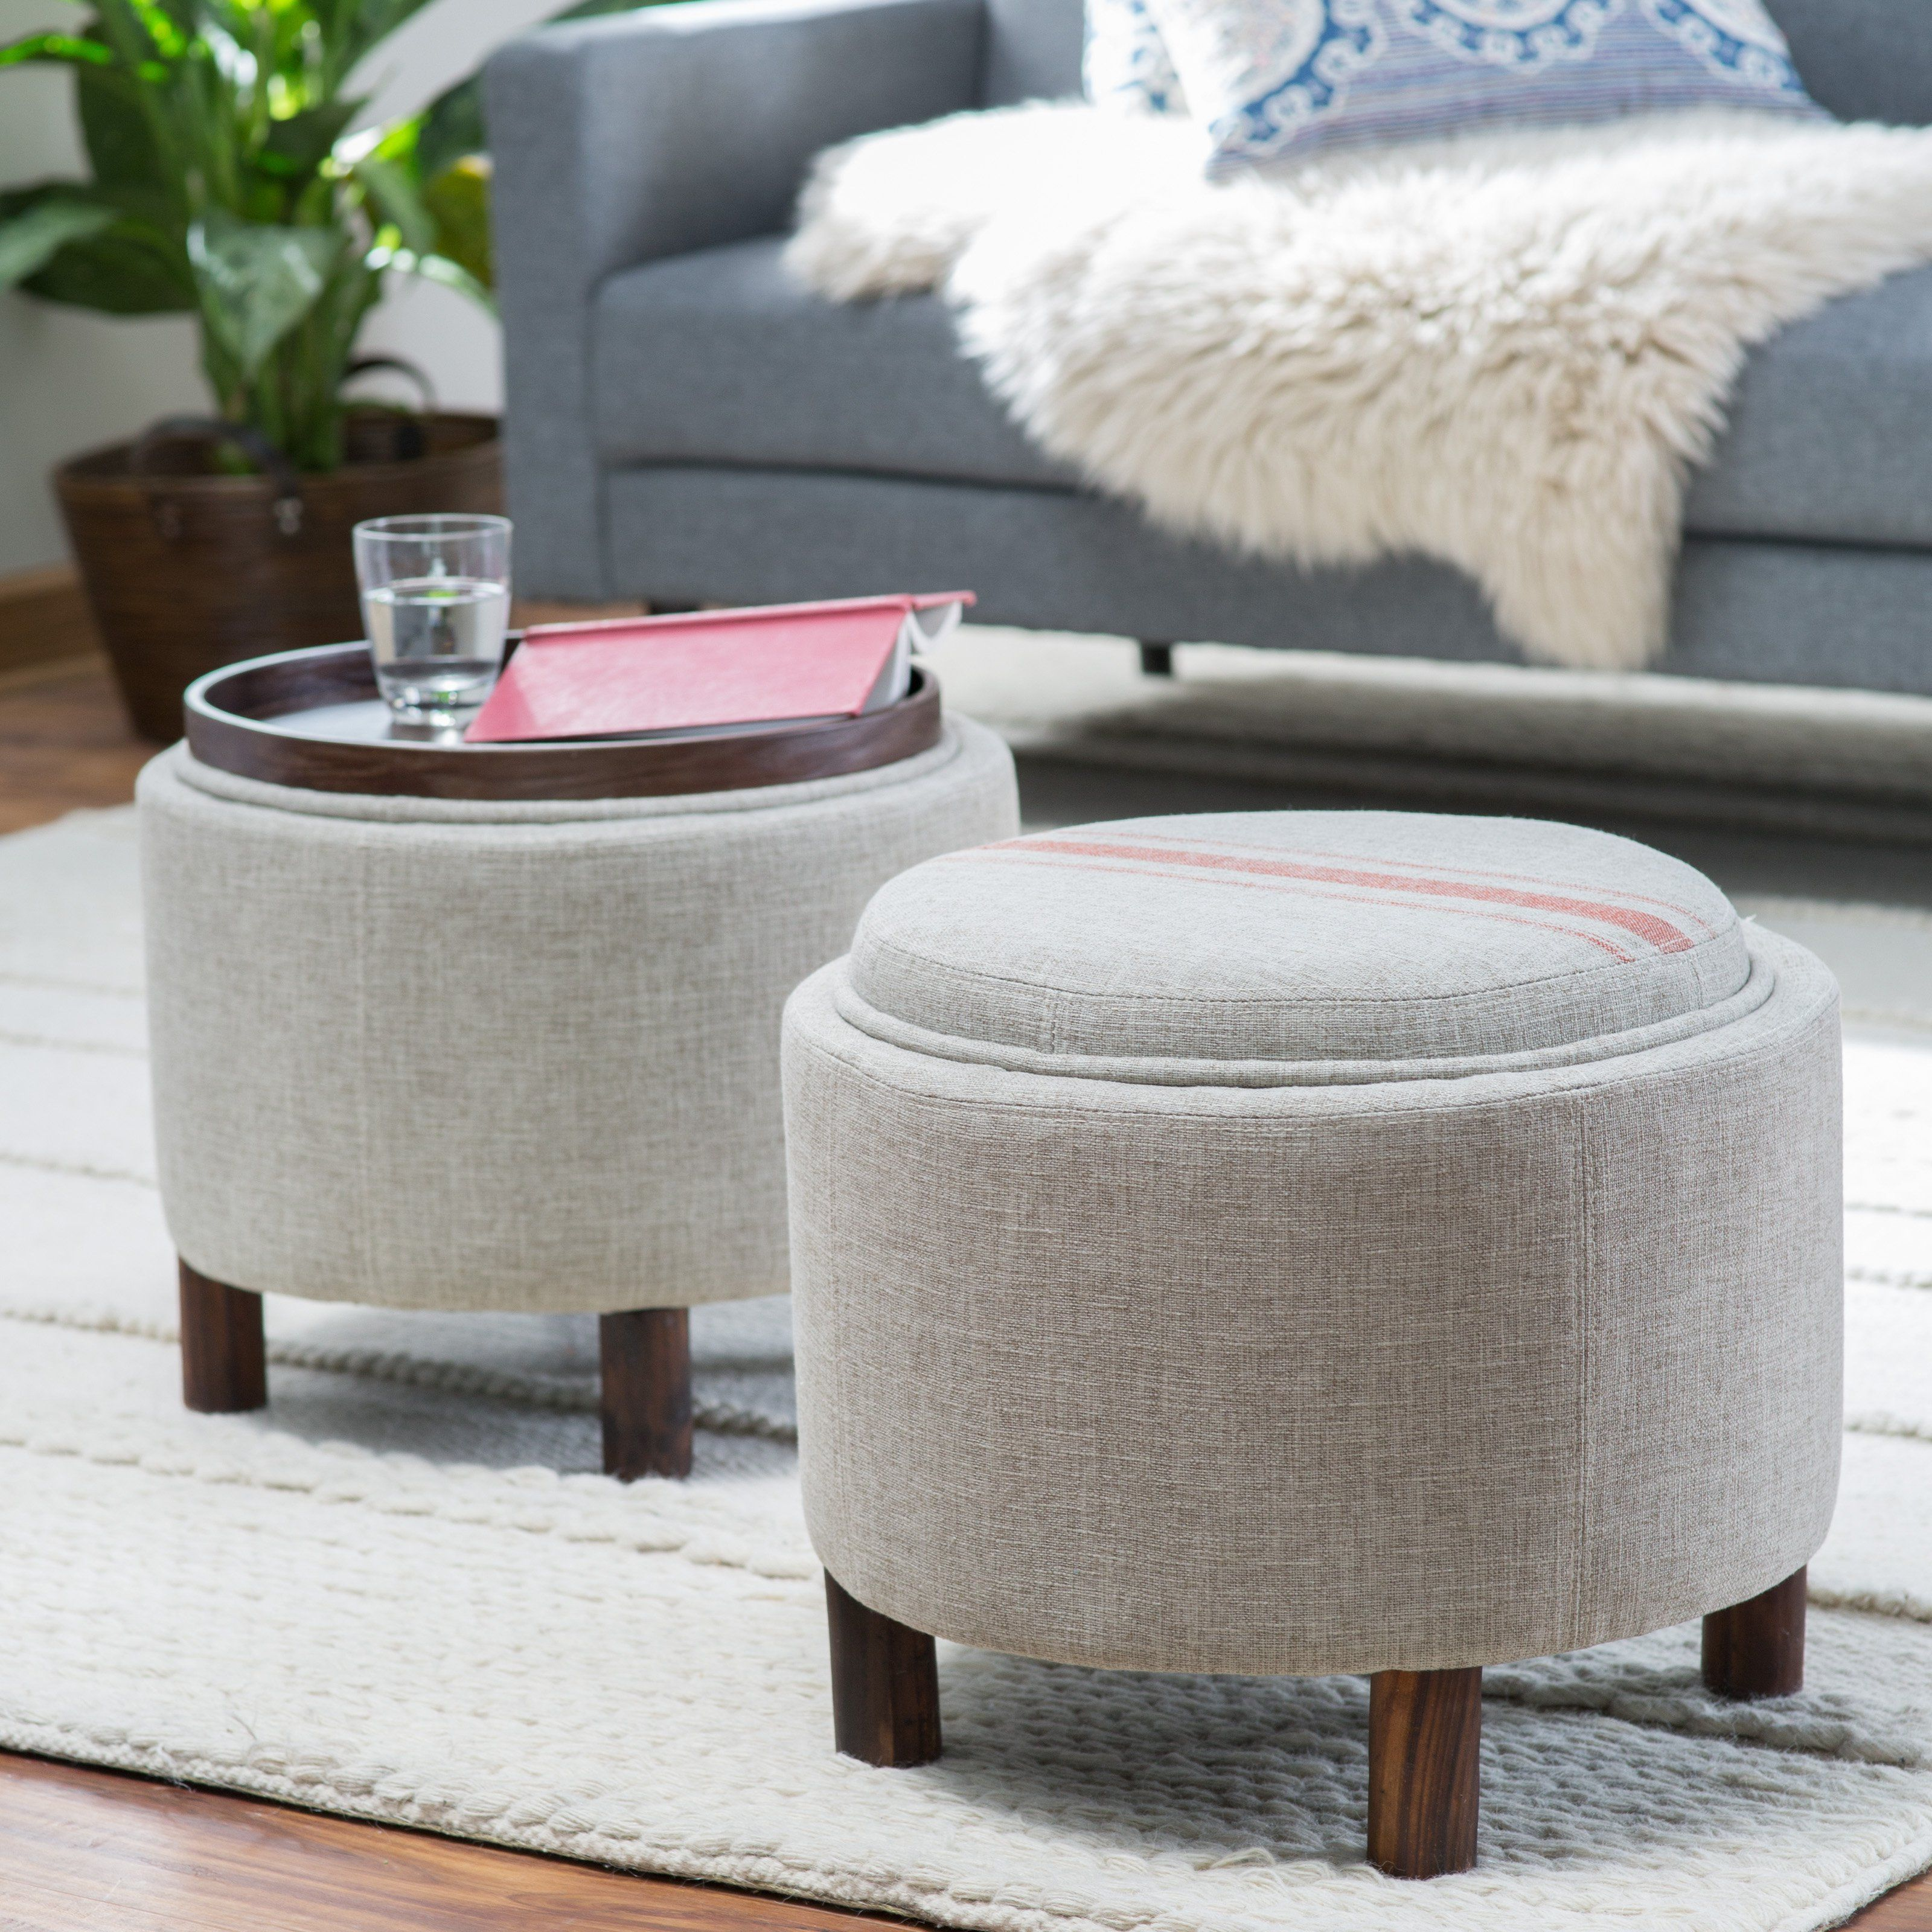 Big Square Ottoman Coffee Table Download Home Appealing Round Tufted Coffee Table 32 Bench Ra